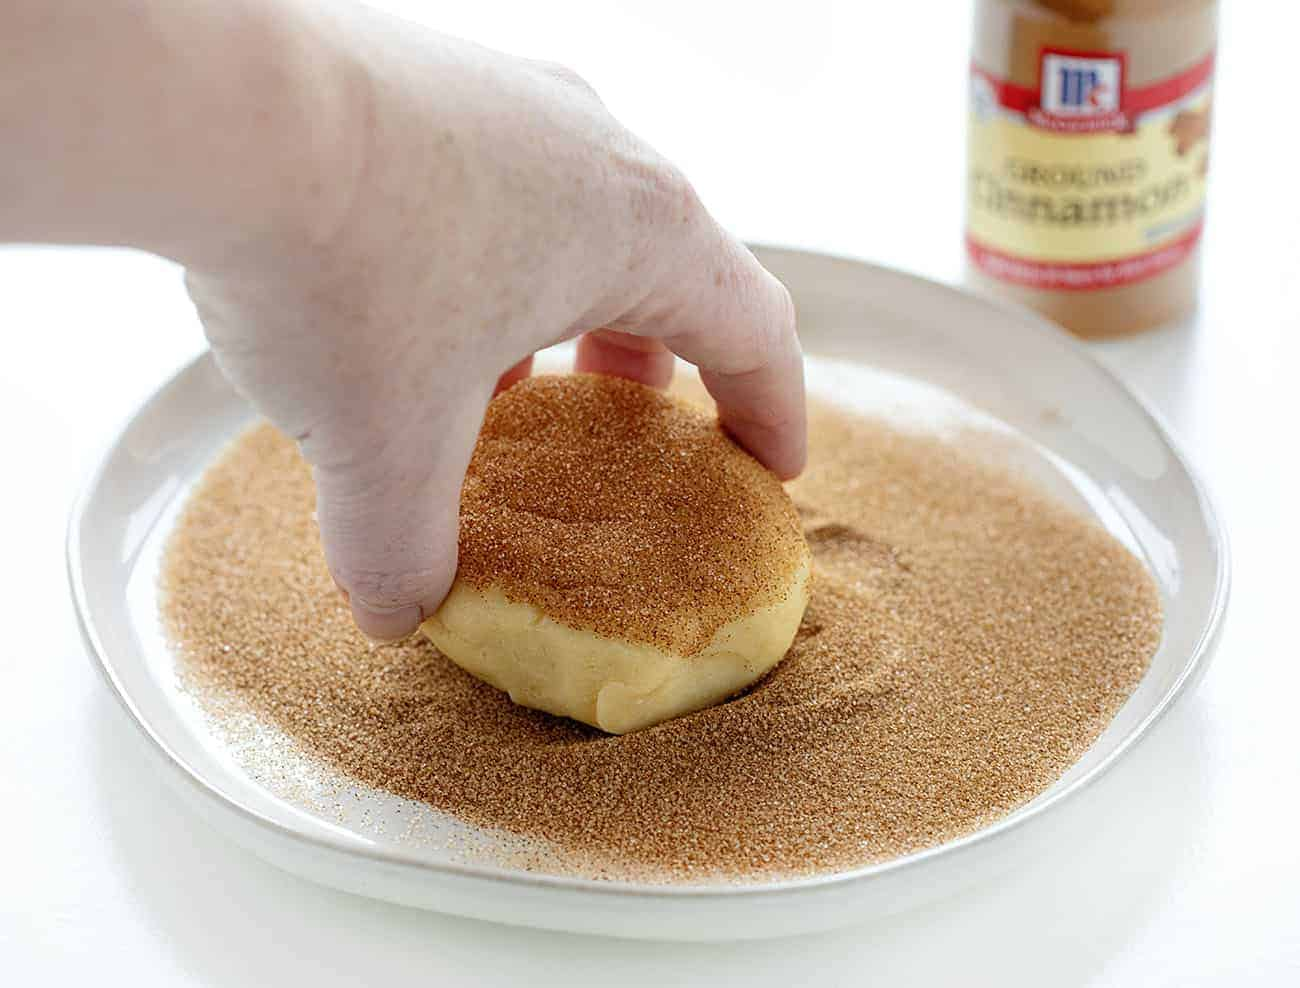 Dropping Snickerdoodle Cookie Dough into Cinnamon and Sugar